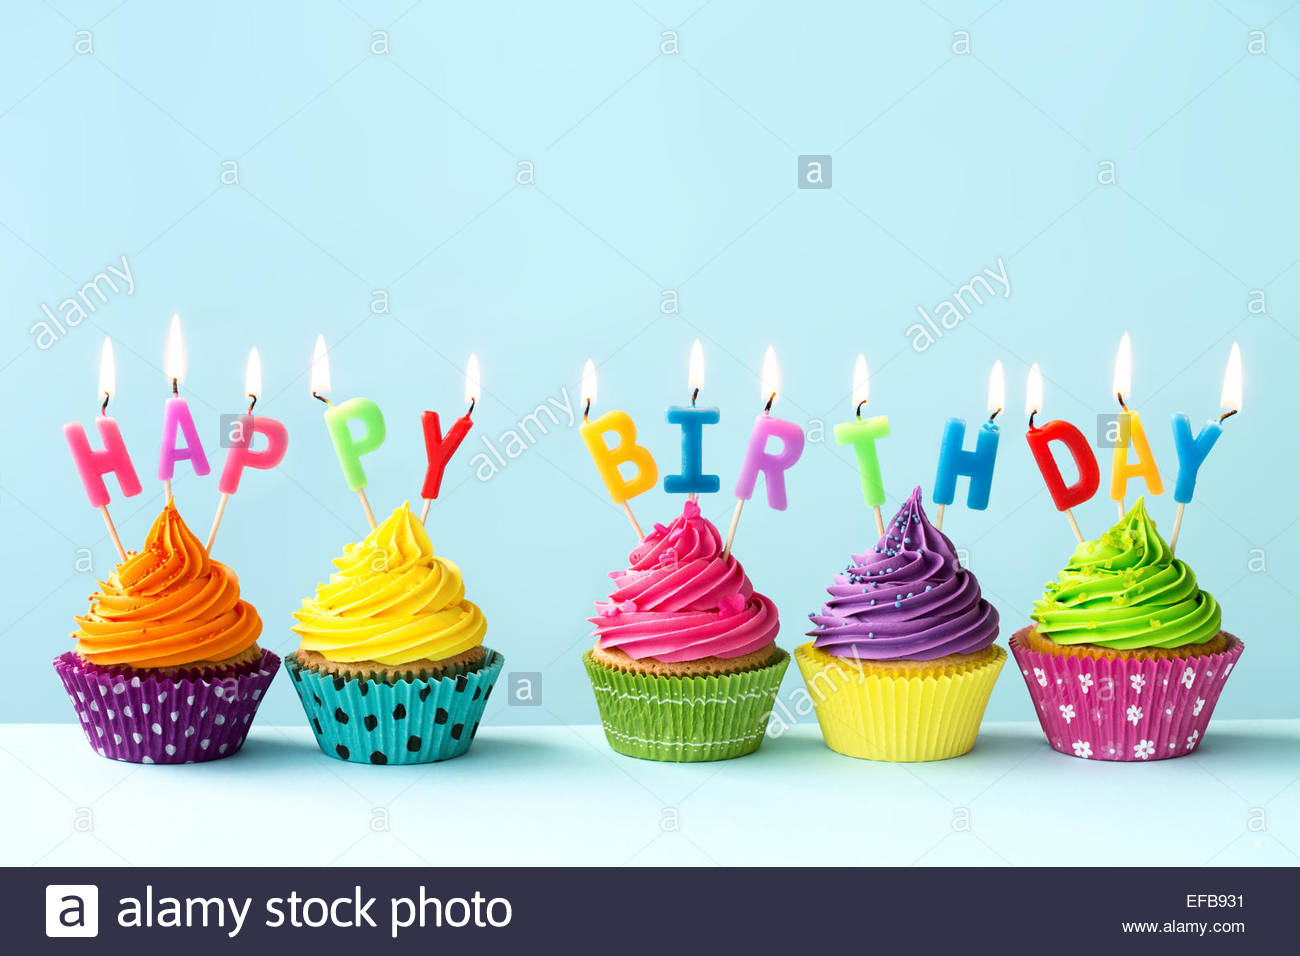 happy birthday cupcake sign ; happy-birthday-cupcakes-EFB931